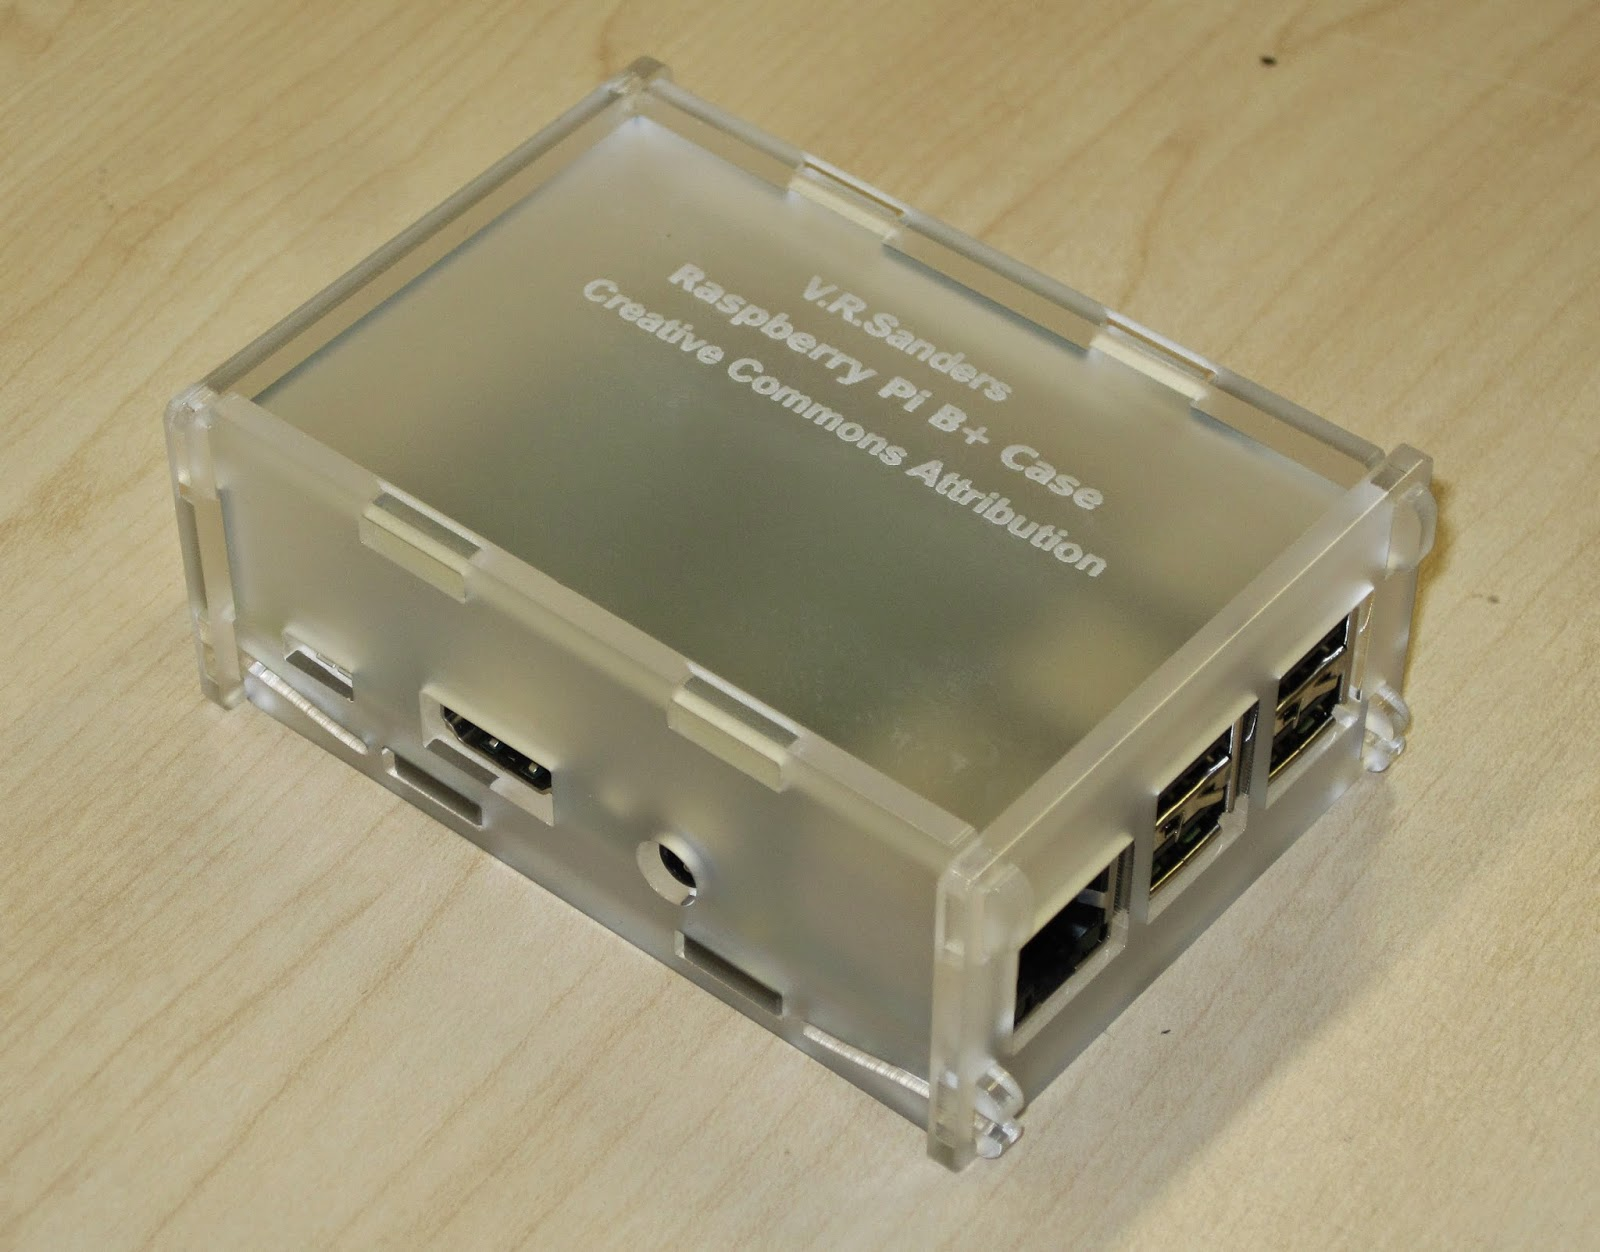 Raspberry pi custom box design for Raspberry pi 3 architecture